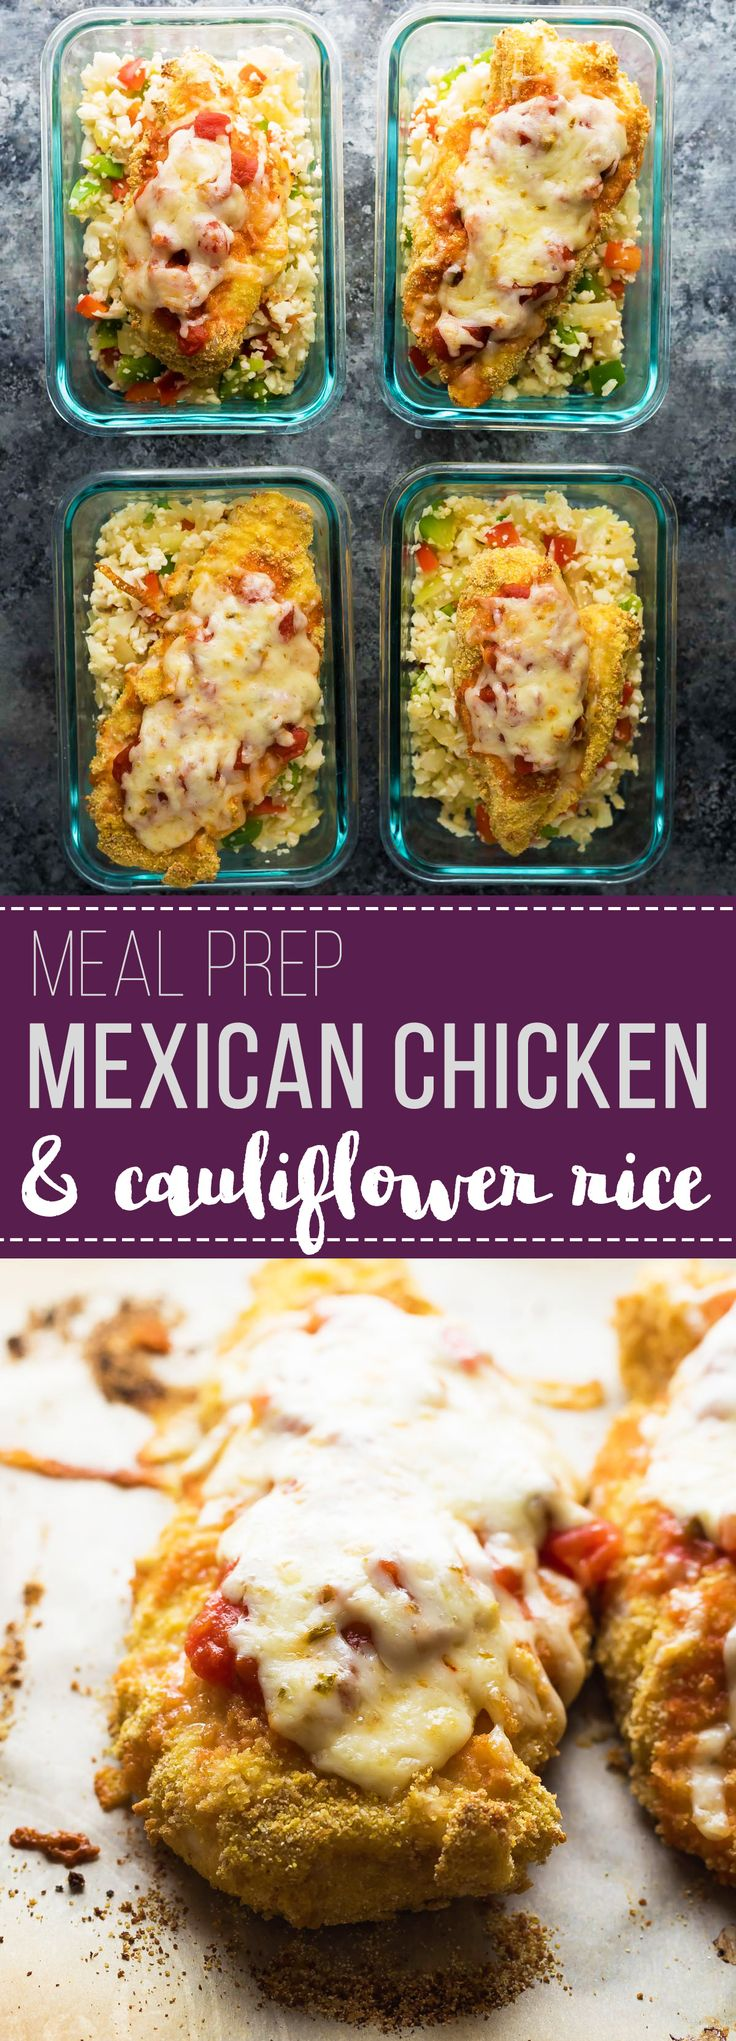 Mexican chicken and cauliflower rice meal prep bowls make for a tasty, low carb work lunch that can be prepped on the weekend.  Topped with jalapeño Monterey Jack cheese for a little kick!